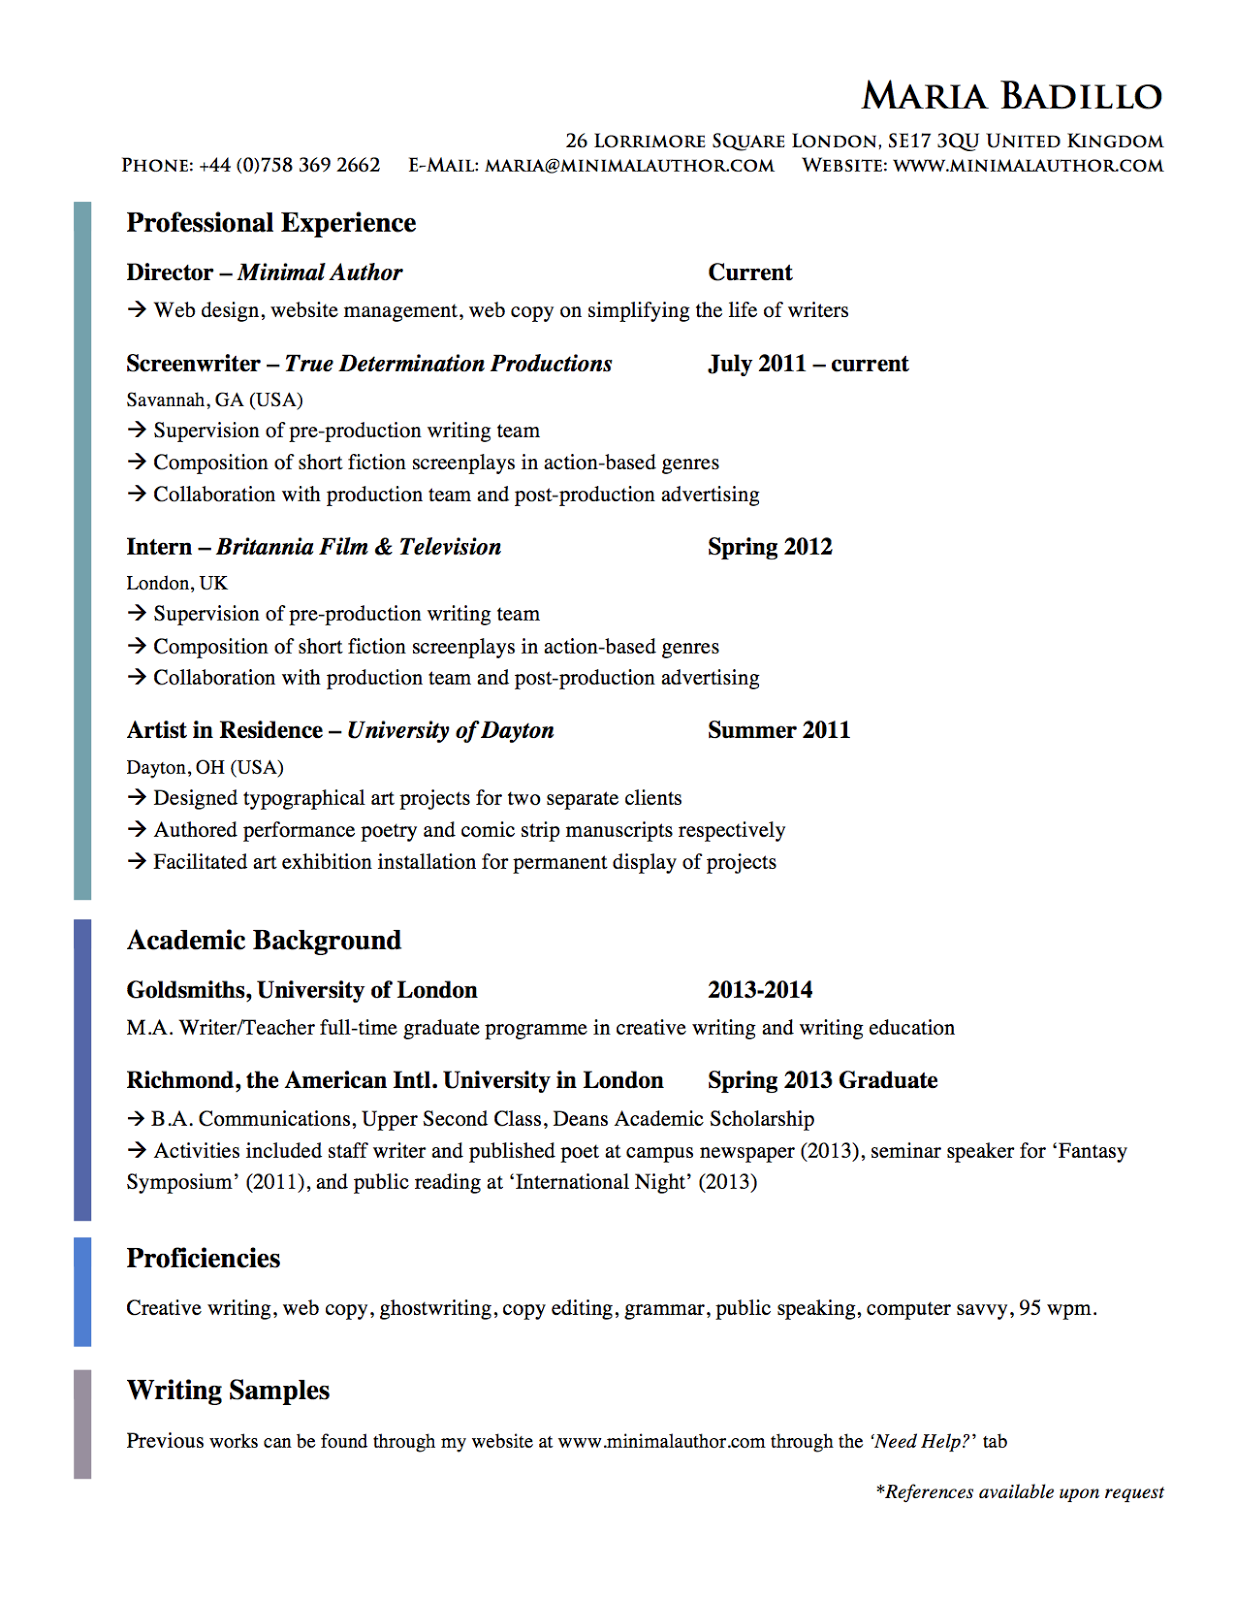 sample resume in khmer resume builder sample resume in khmer essay writing service essayerudite resume pdf resume cv template examples curriculum vitae